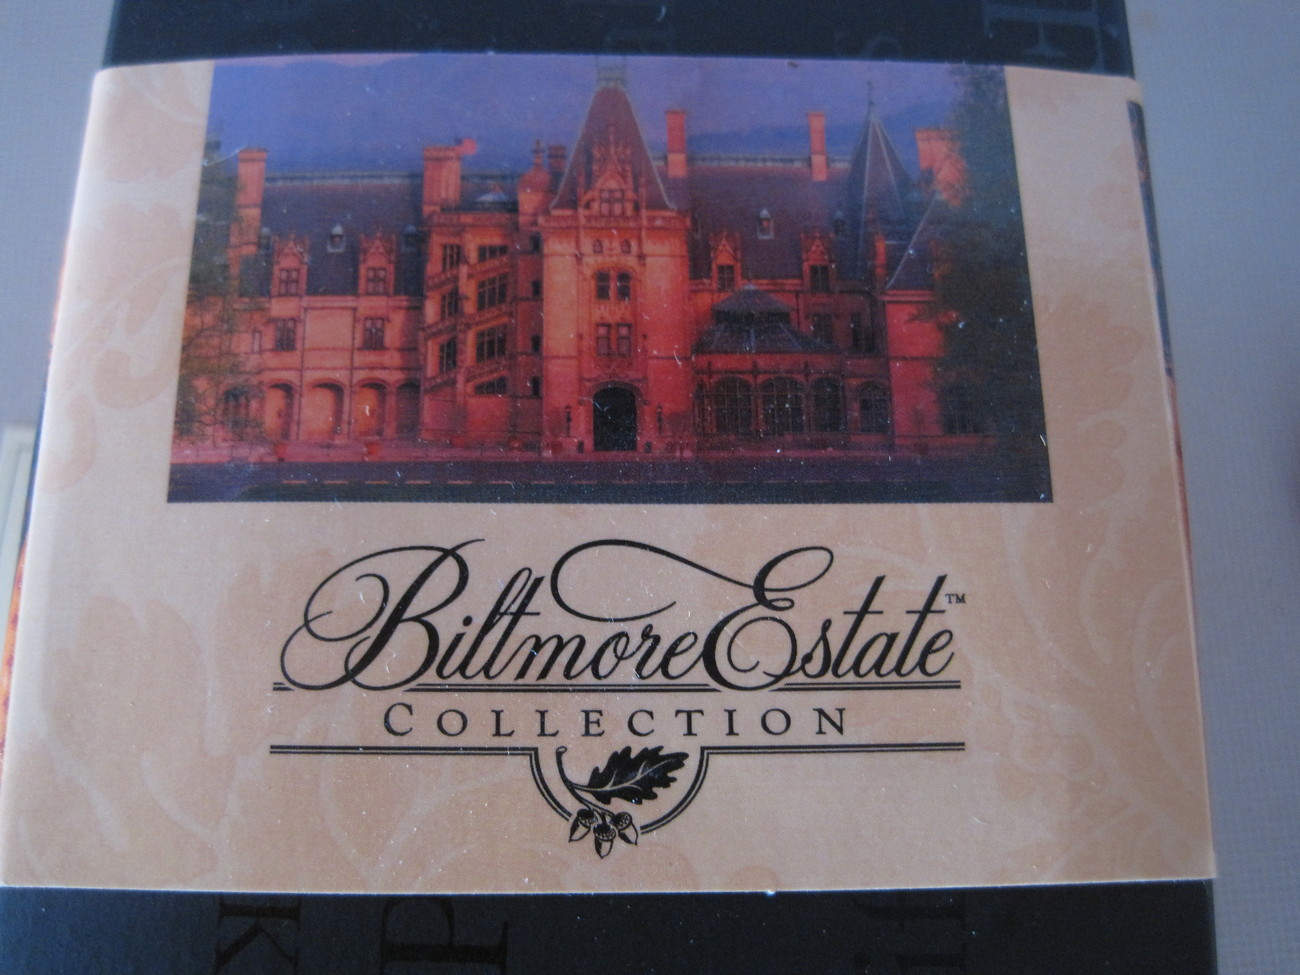 "Just the Right Shoe Biltmore Estate Collection ""Charisma"" in box"